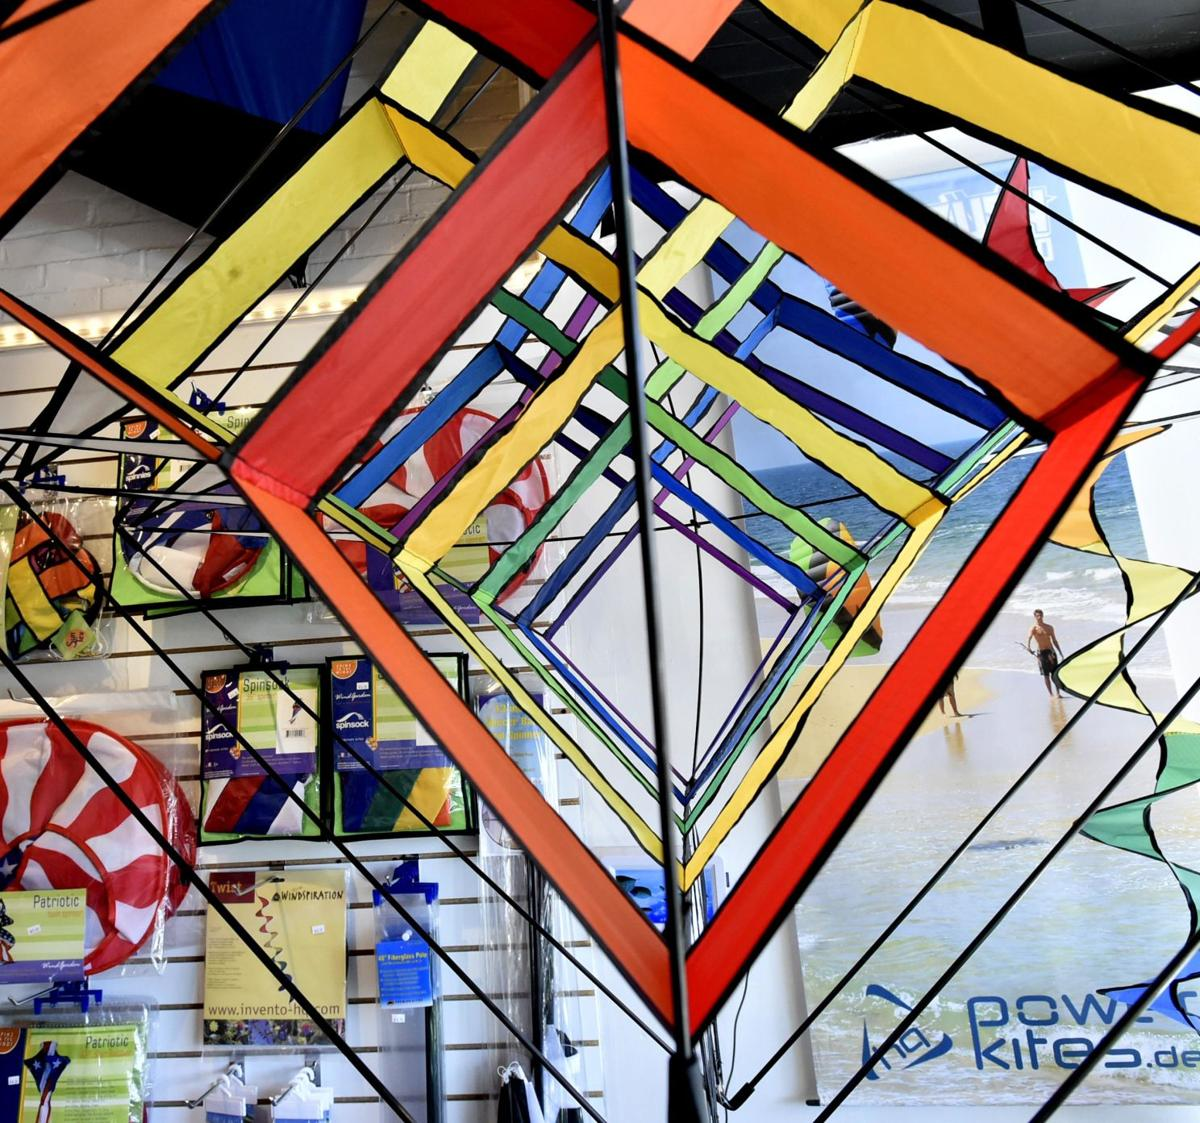 Branford's Colors in the Wind offers widest selection of kites, and so much more